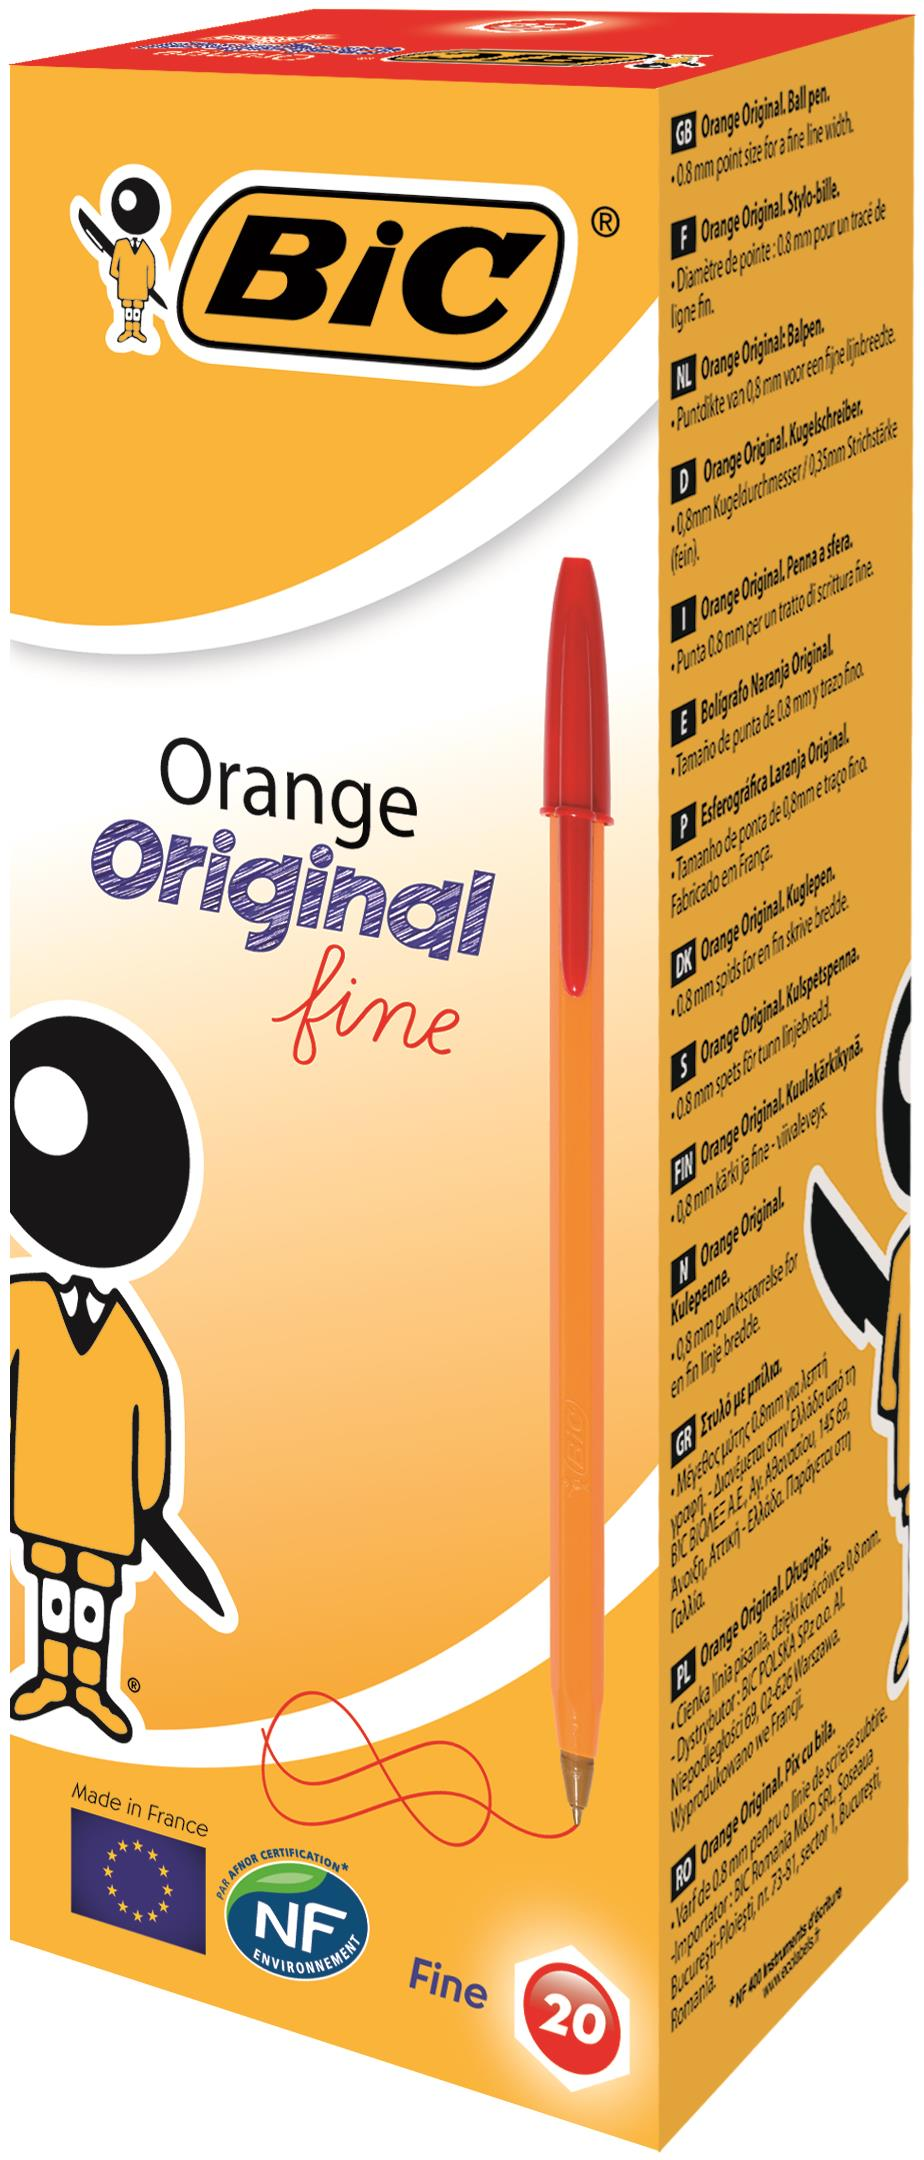 Bic Orange Fine Ballpoint Pen Red (Pack of 20) 1199110112